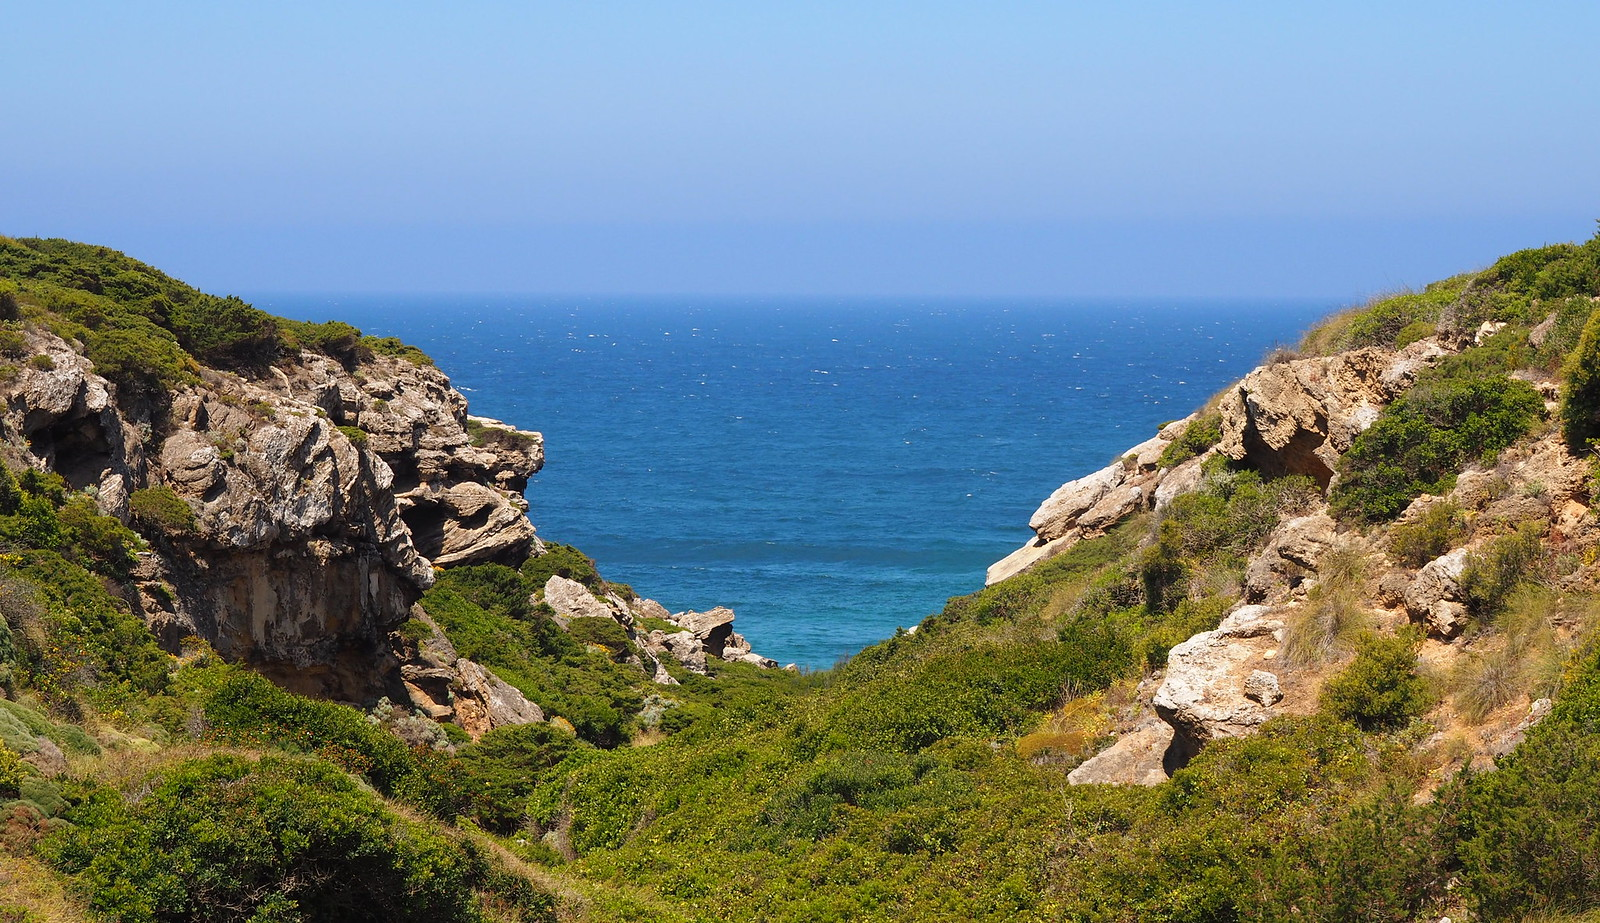 fisherman's trail between vila do bispo and cabo sao vicente